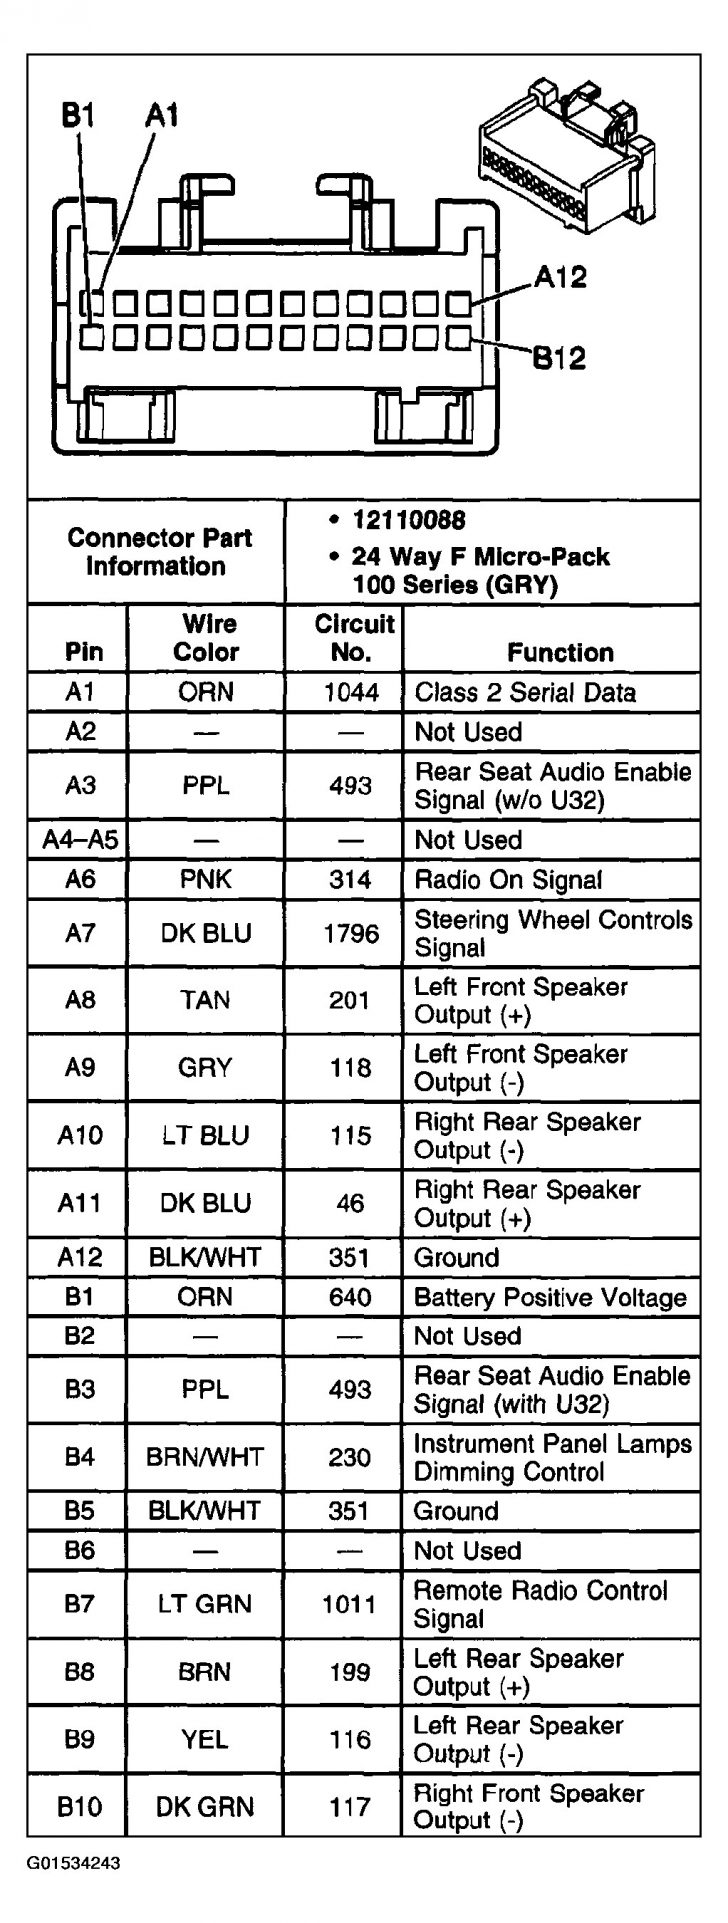 2002 Chevy Trailblazer Radio Wiring Diagram